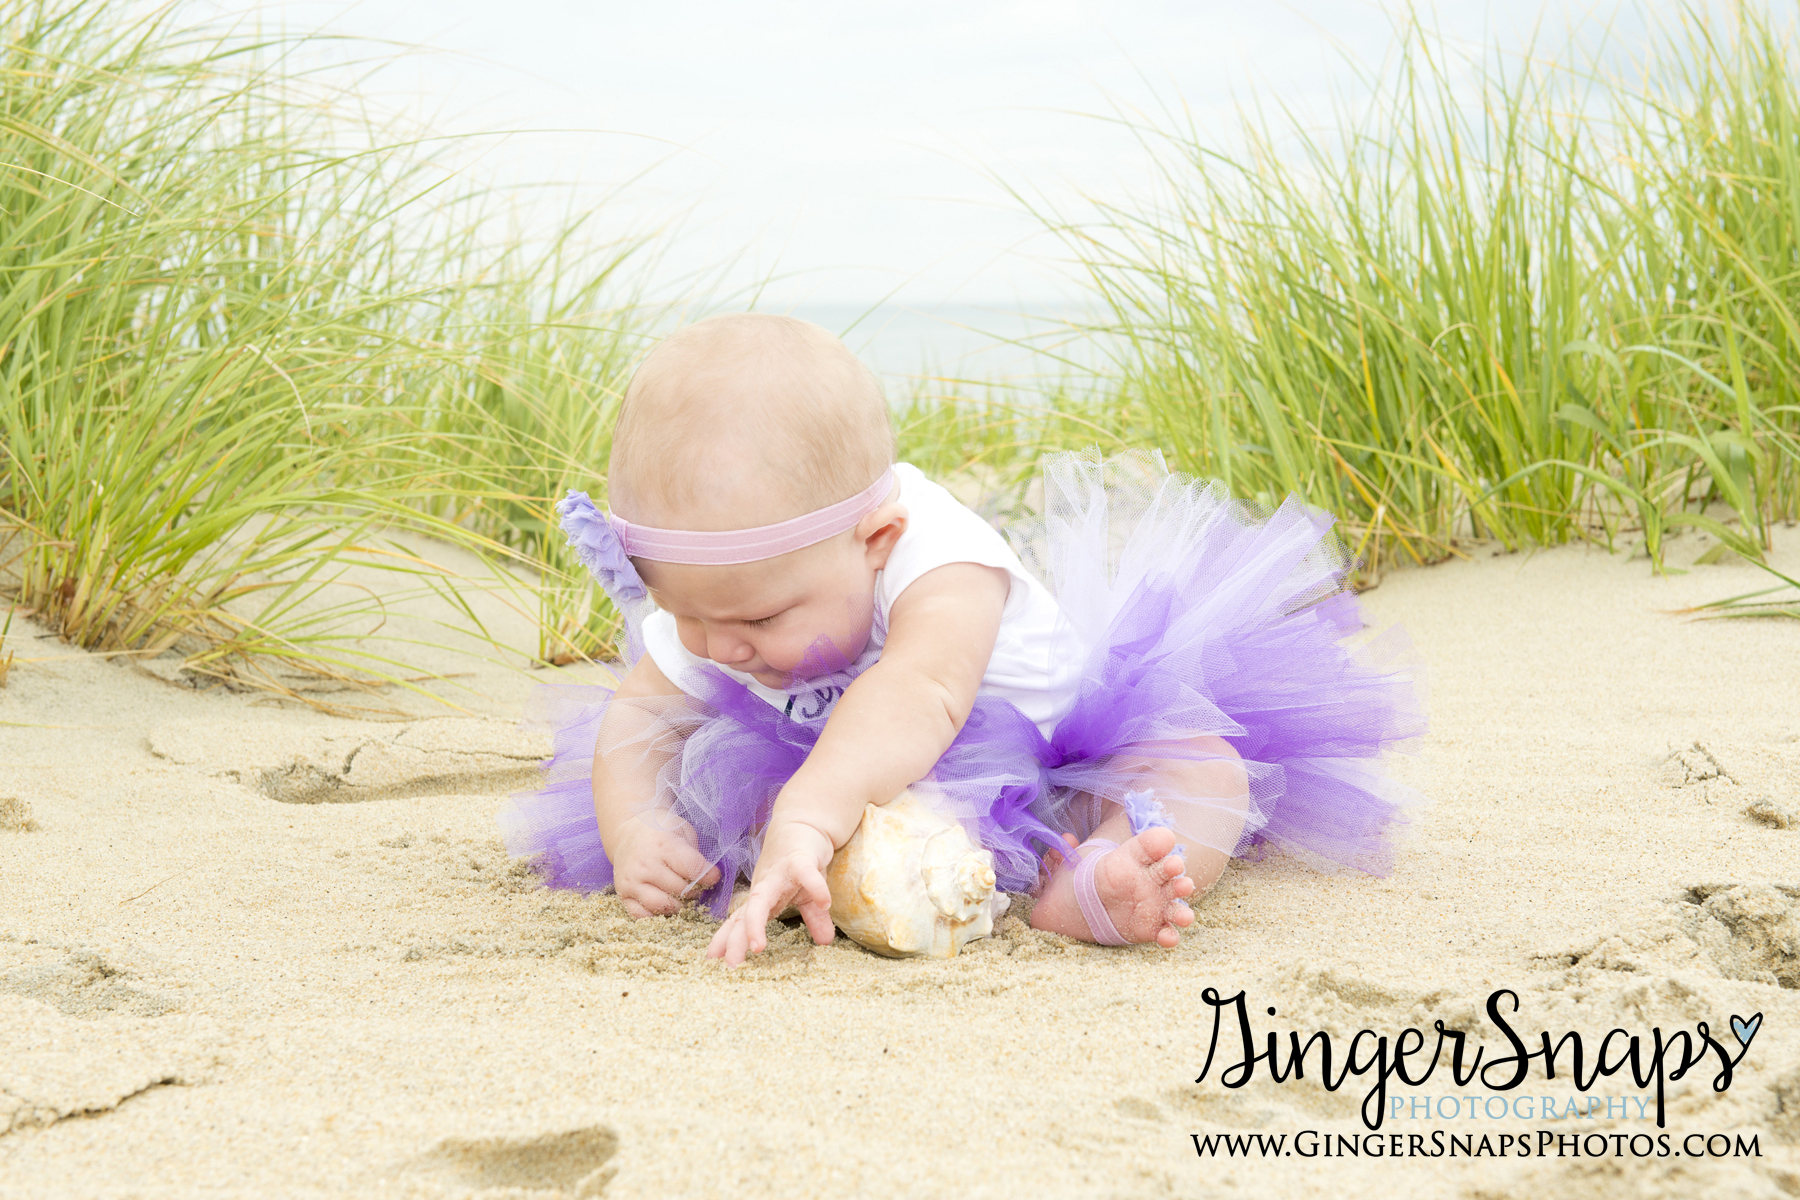 GingerSnaps Photography - 12.jpg